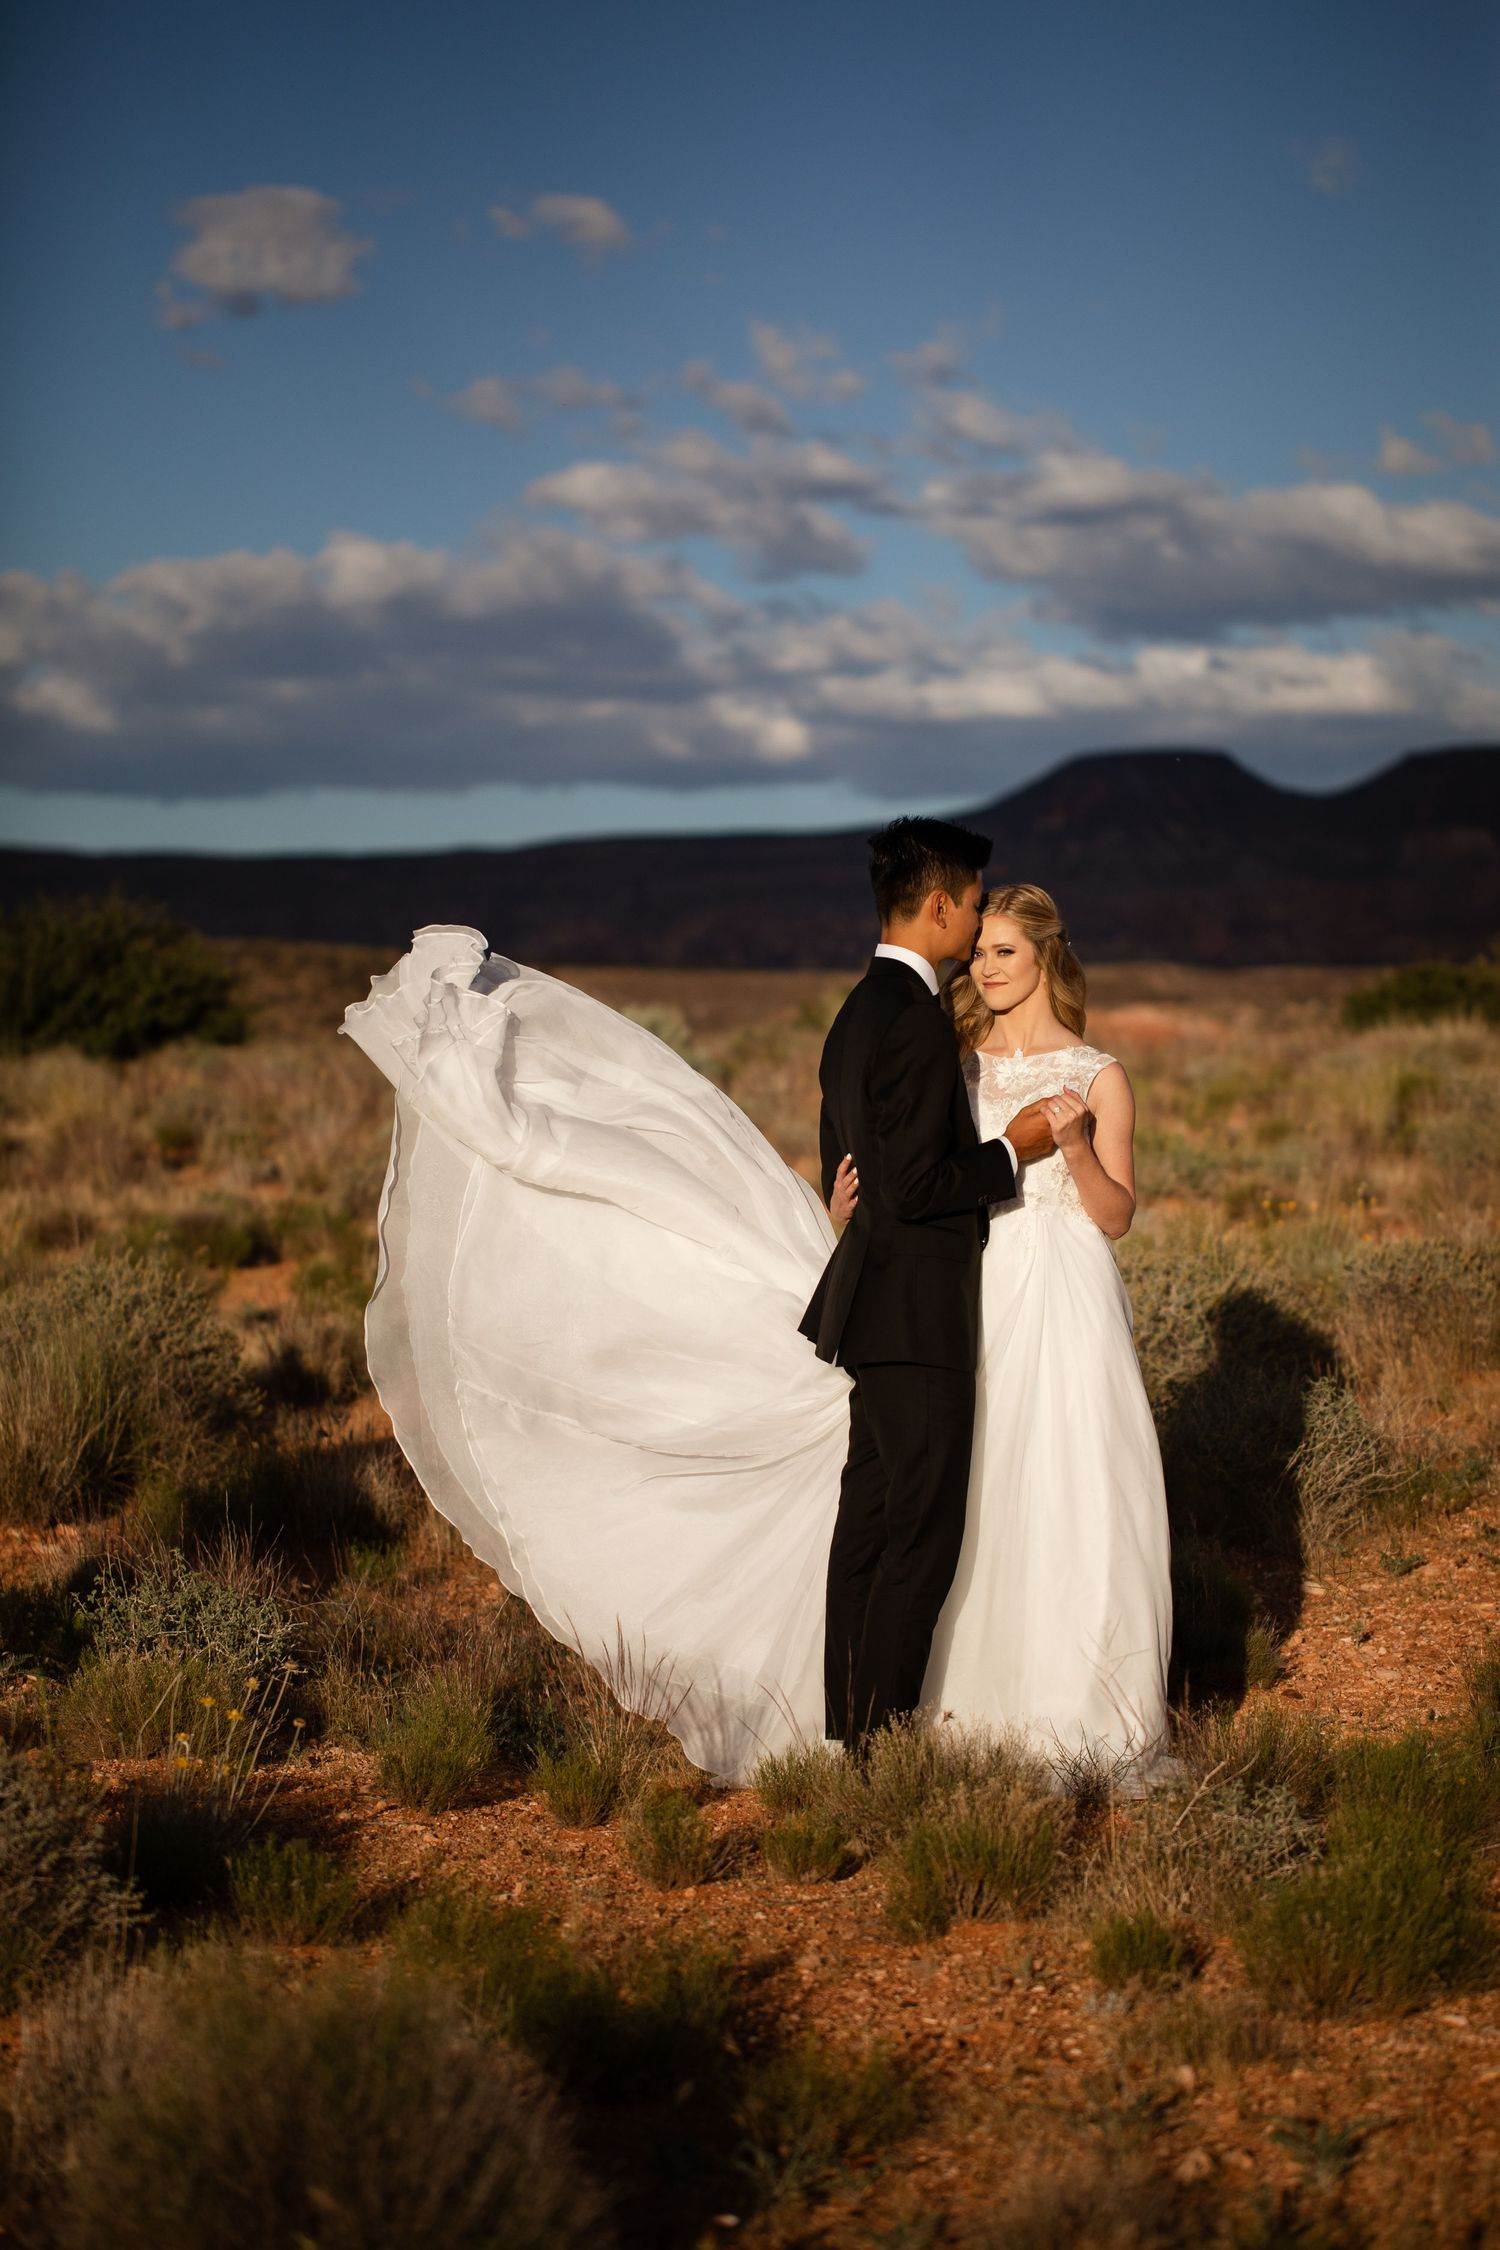 Adventure session photography services in the desert.  Bride and groom at Zion.